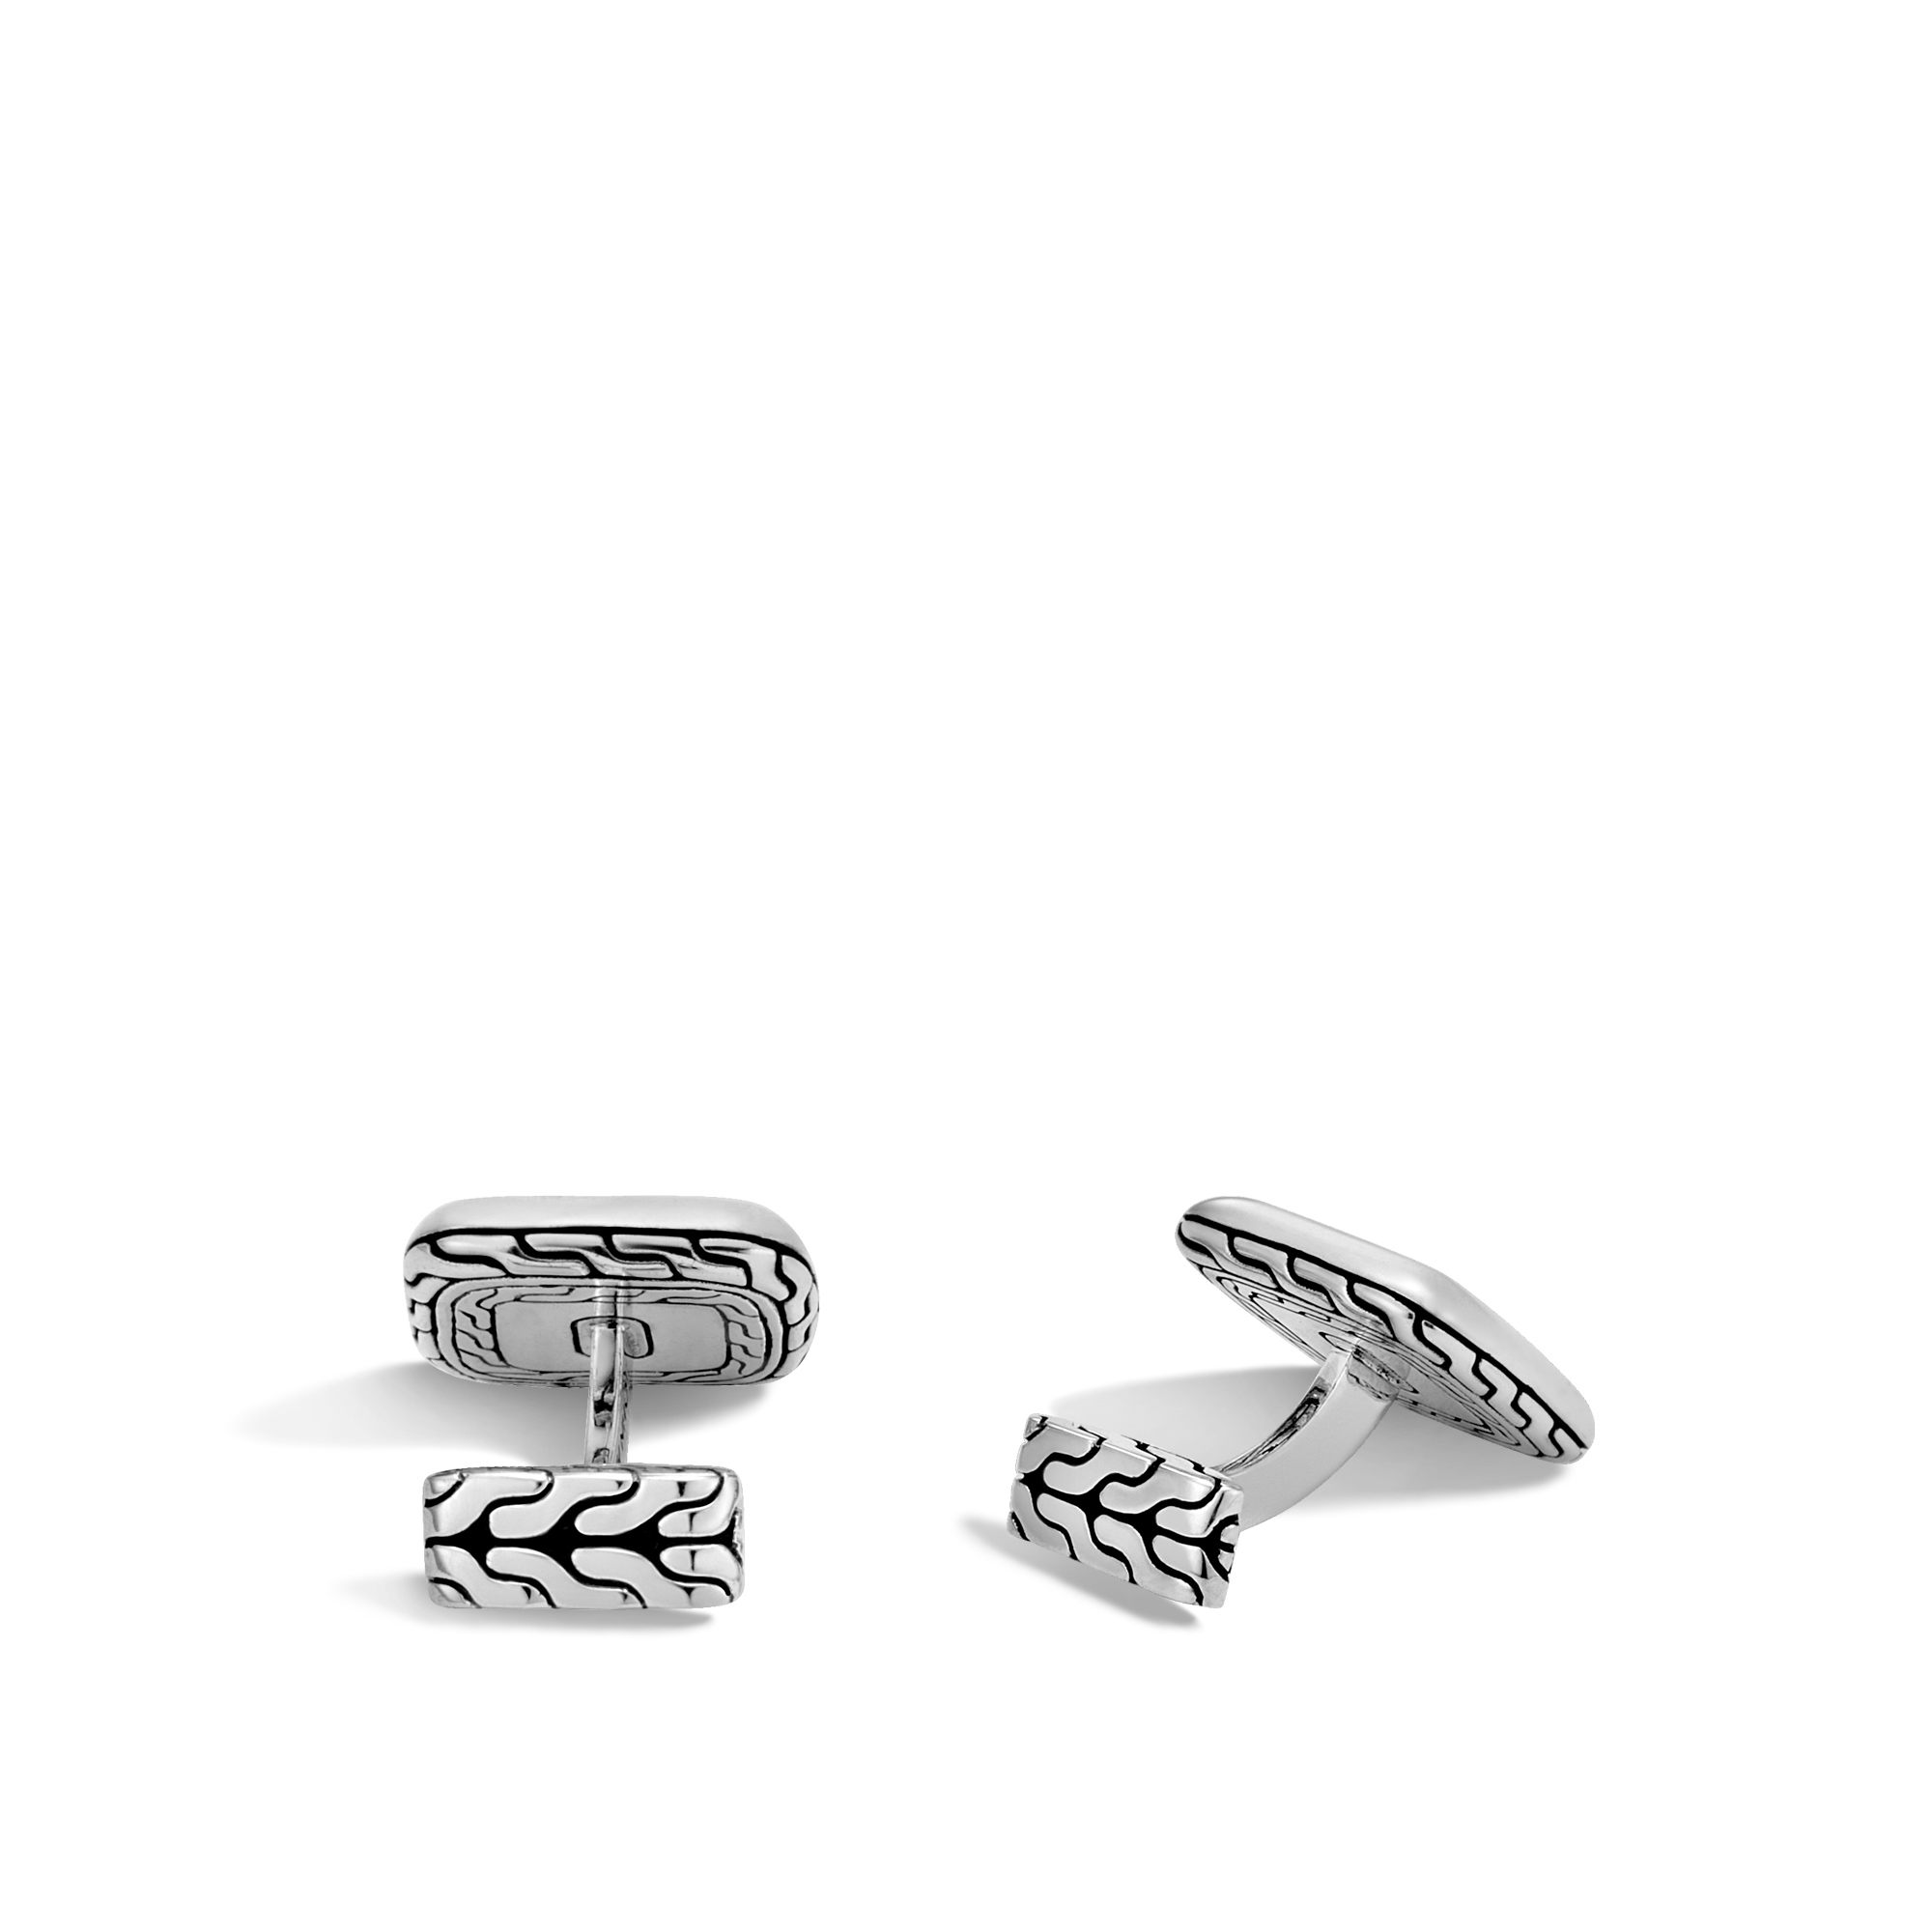 Chain Jawan Cufflinks in Silver and 18K Gold, , large